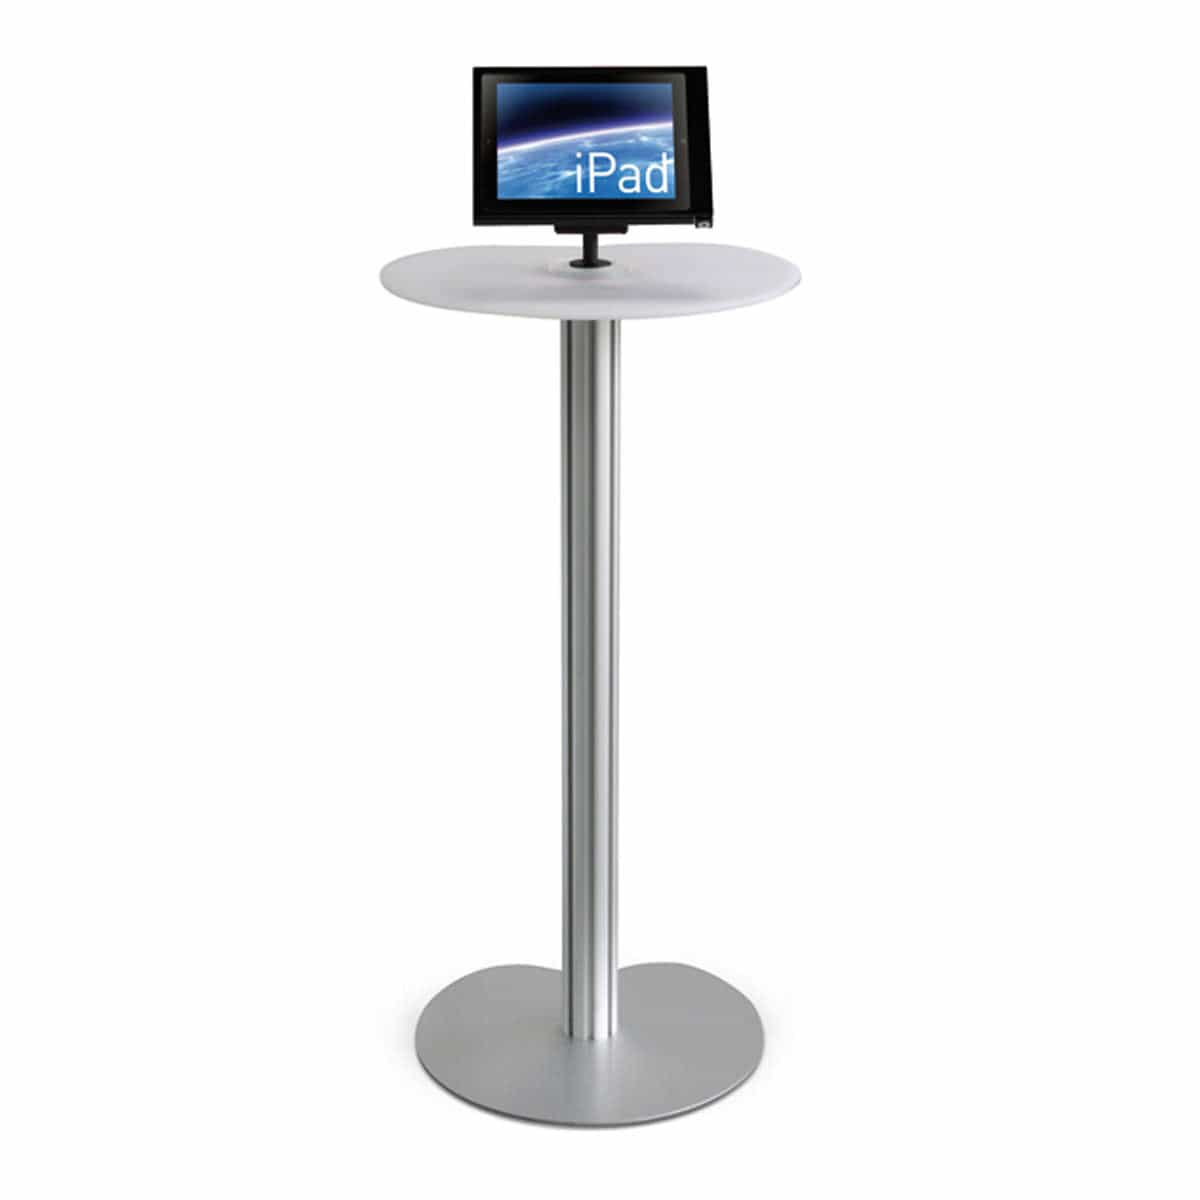 podium table with iPad holder